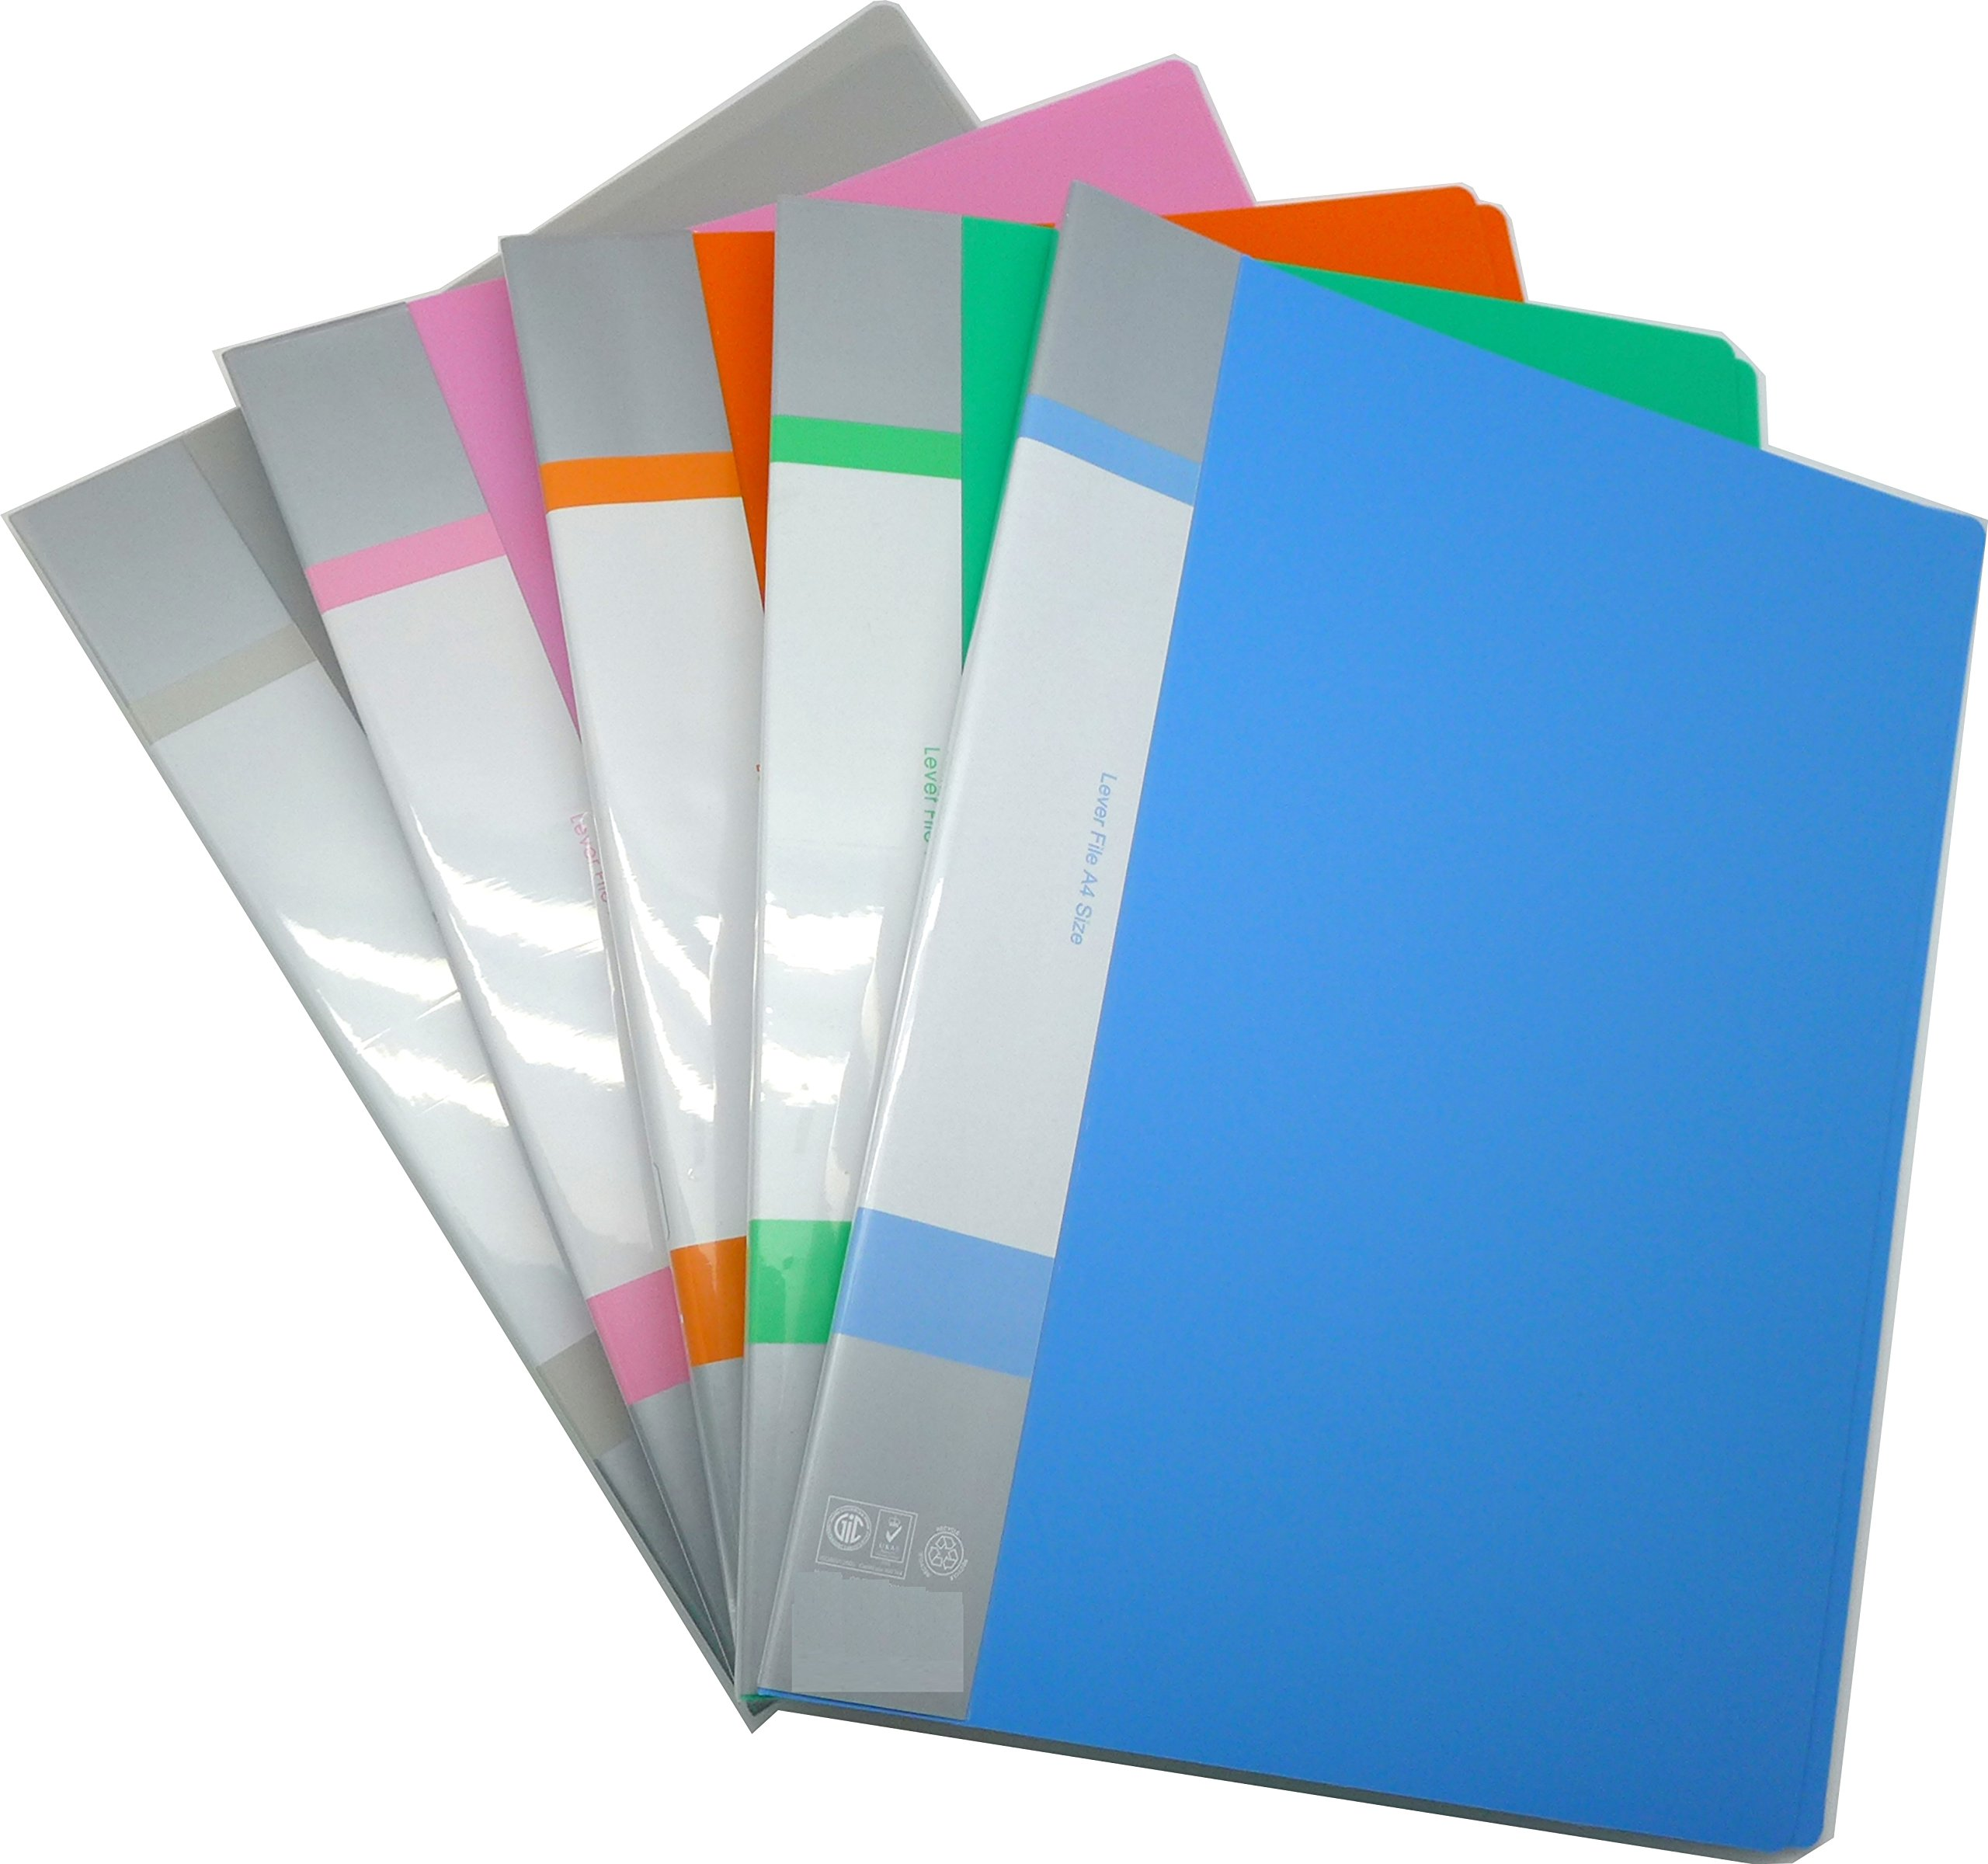 Cypress Lane Punchless Binder with Spring Action Clamp, 100 Sheet Capacity, Pack of 5 (Green/Blue/Orange/Gray/Pink)